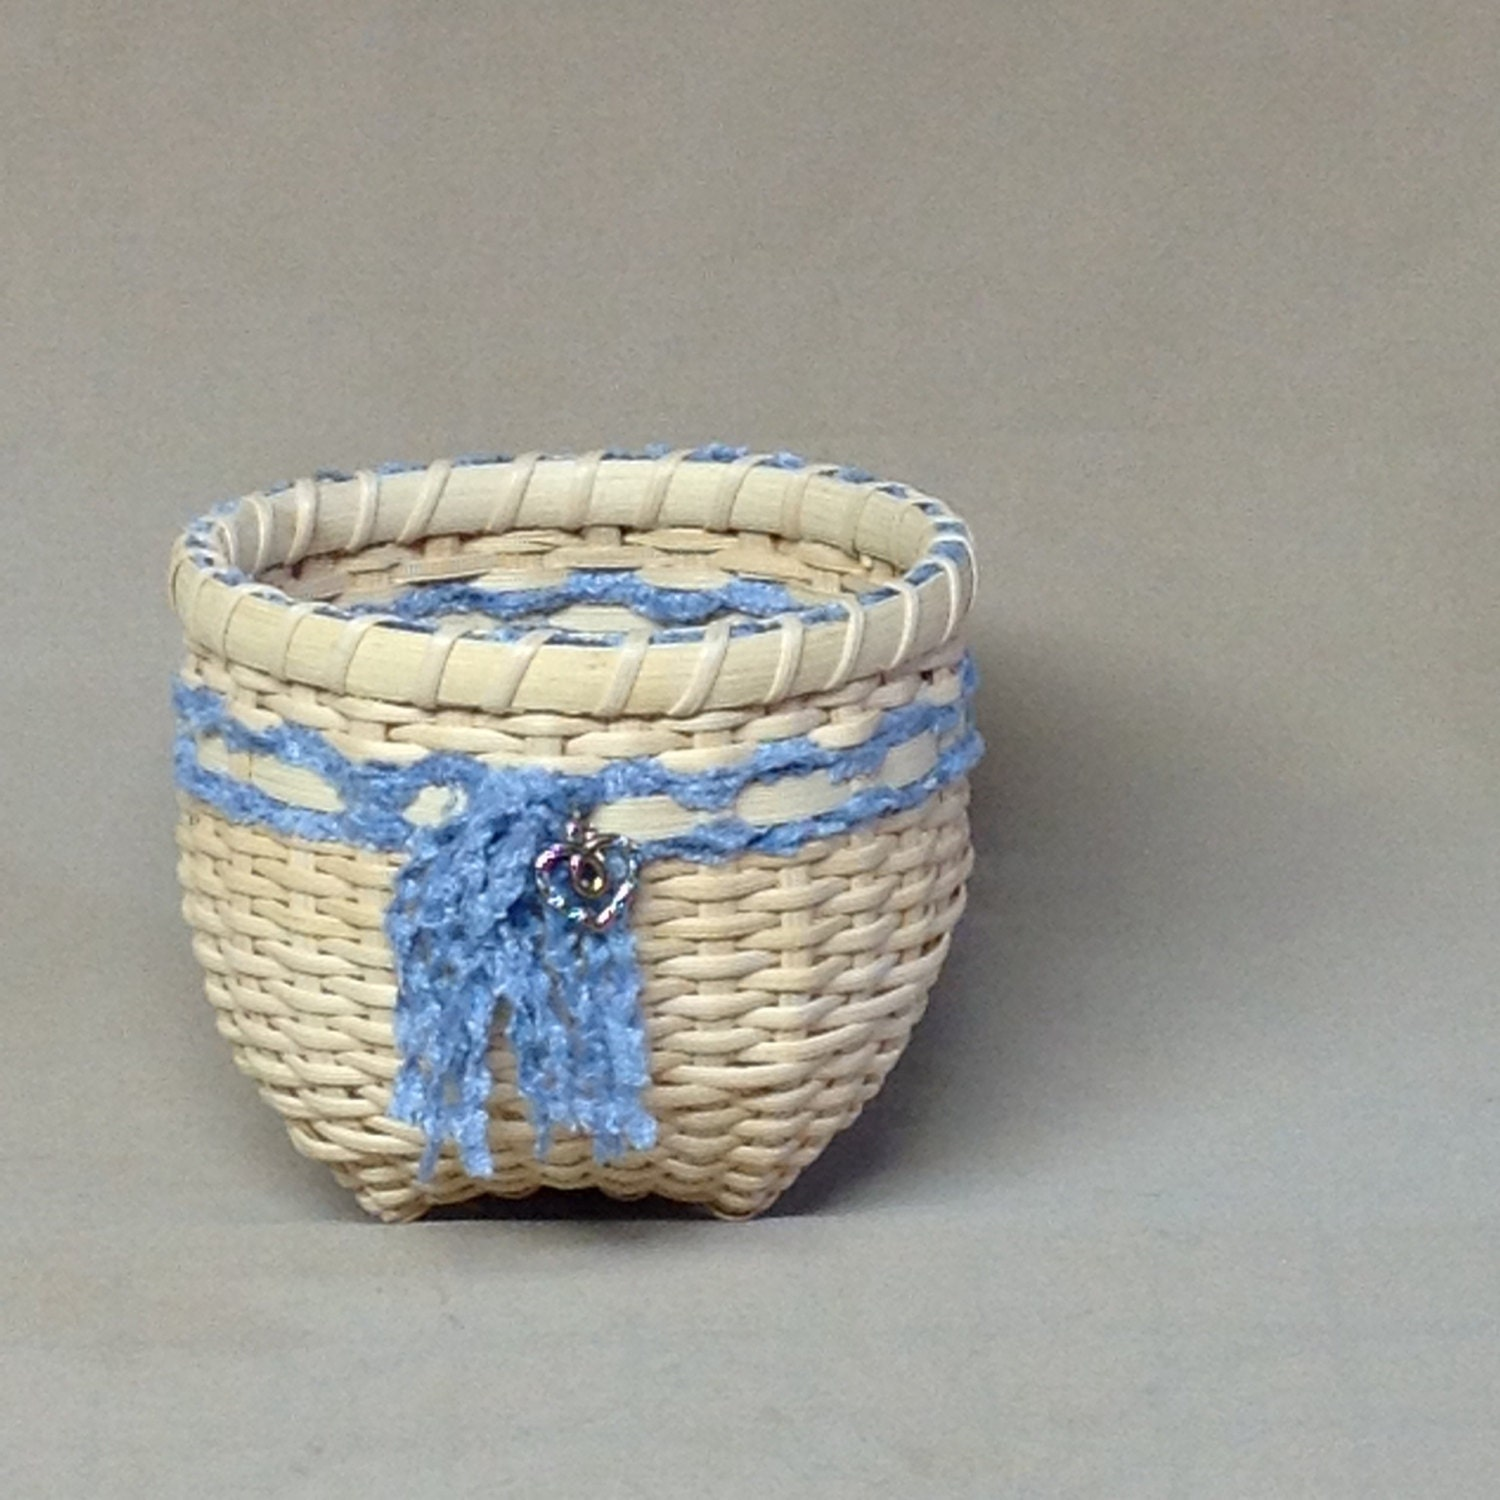 Woven Yarn Basket : Cute little hand woven basket light blue yarn by